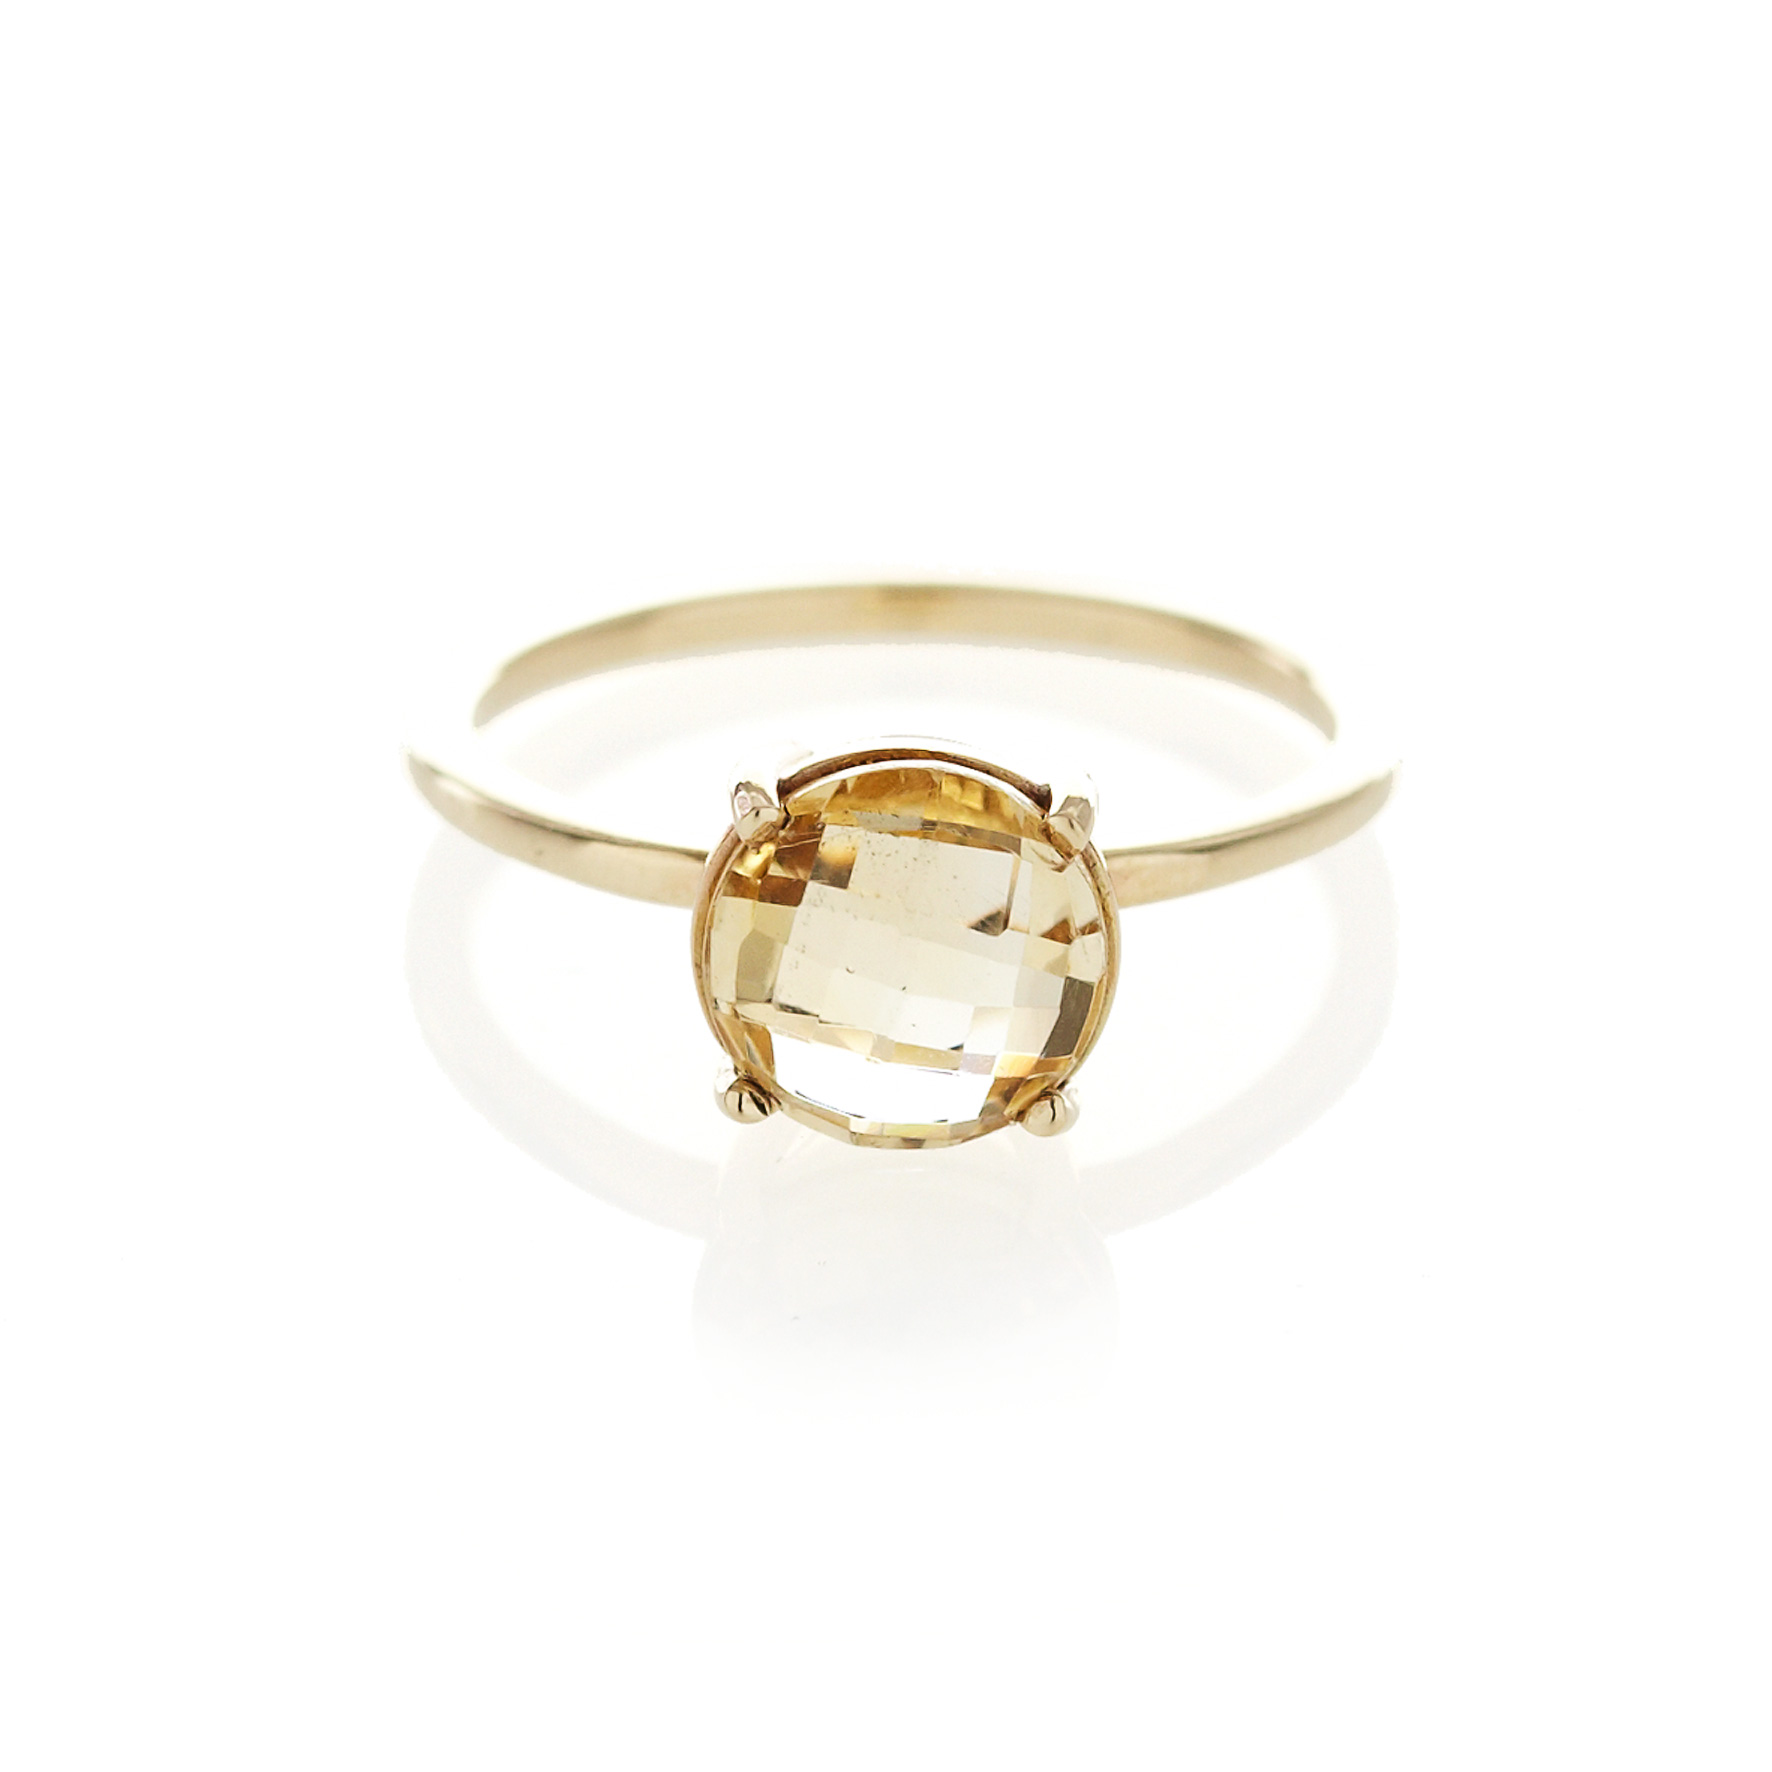 Checkerboard citrine ring in 9ct yellow gold